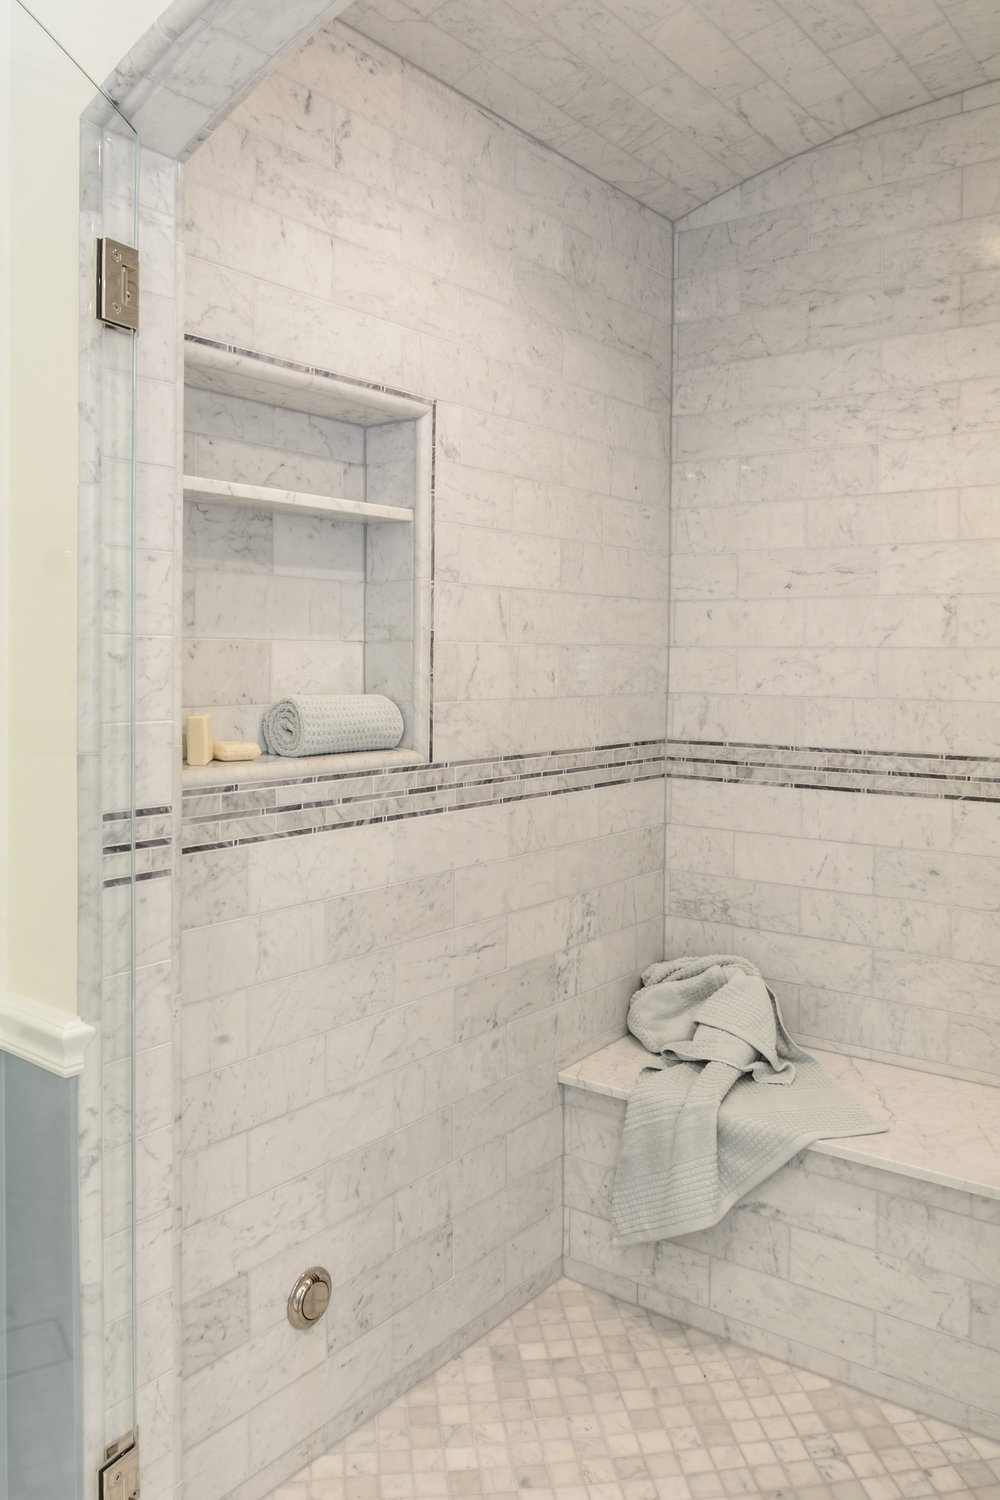 Calm retreat: soft grey carrera marble arched shower with bench and niche